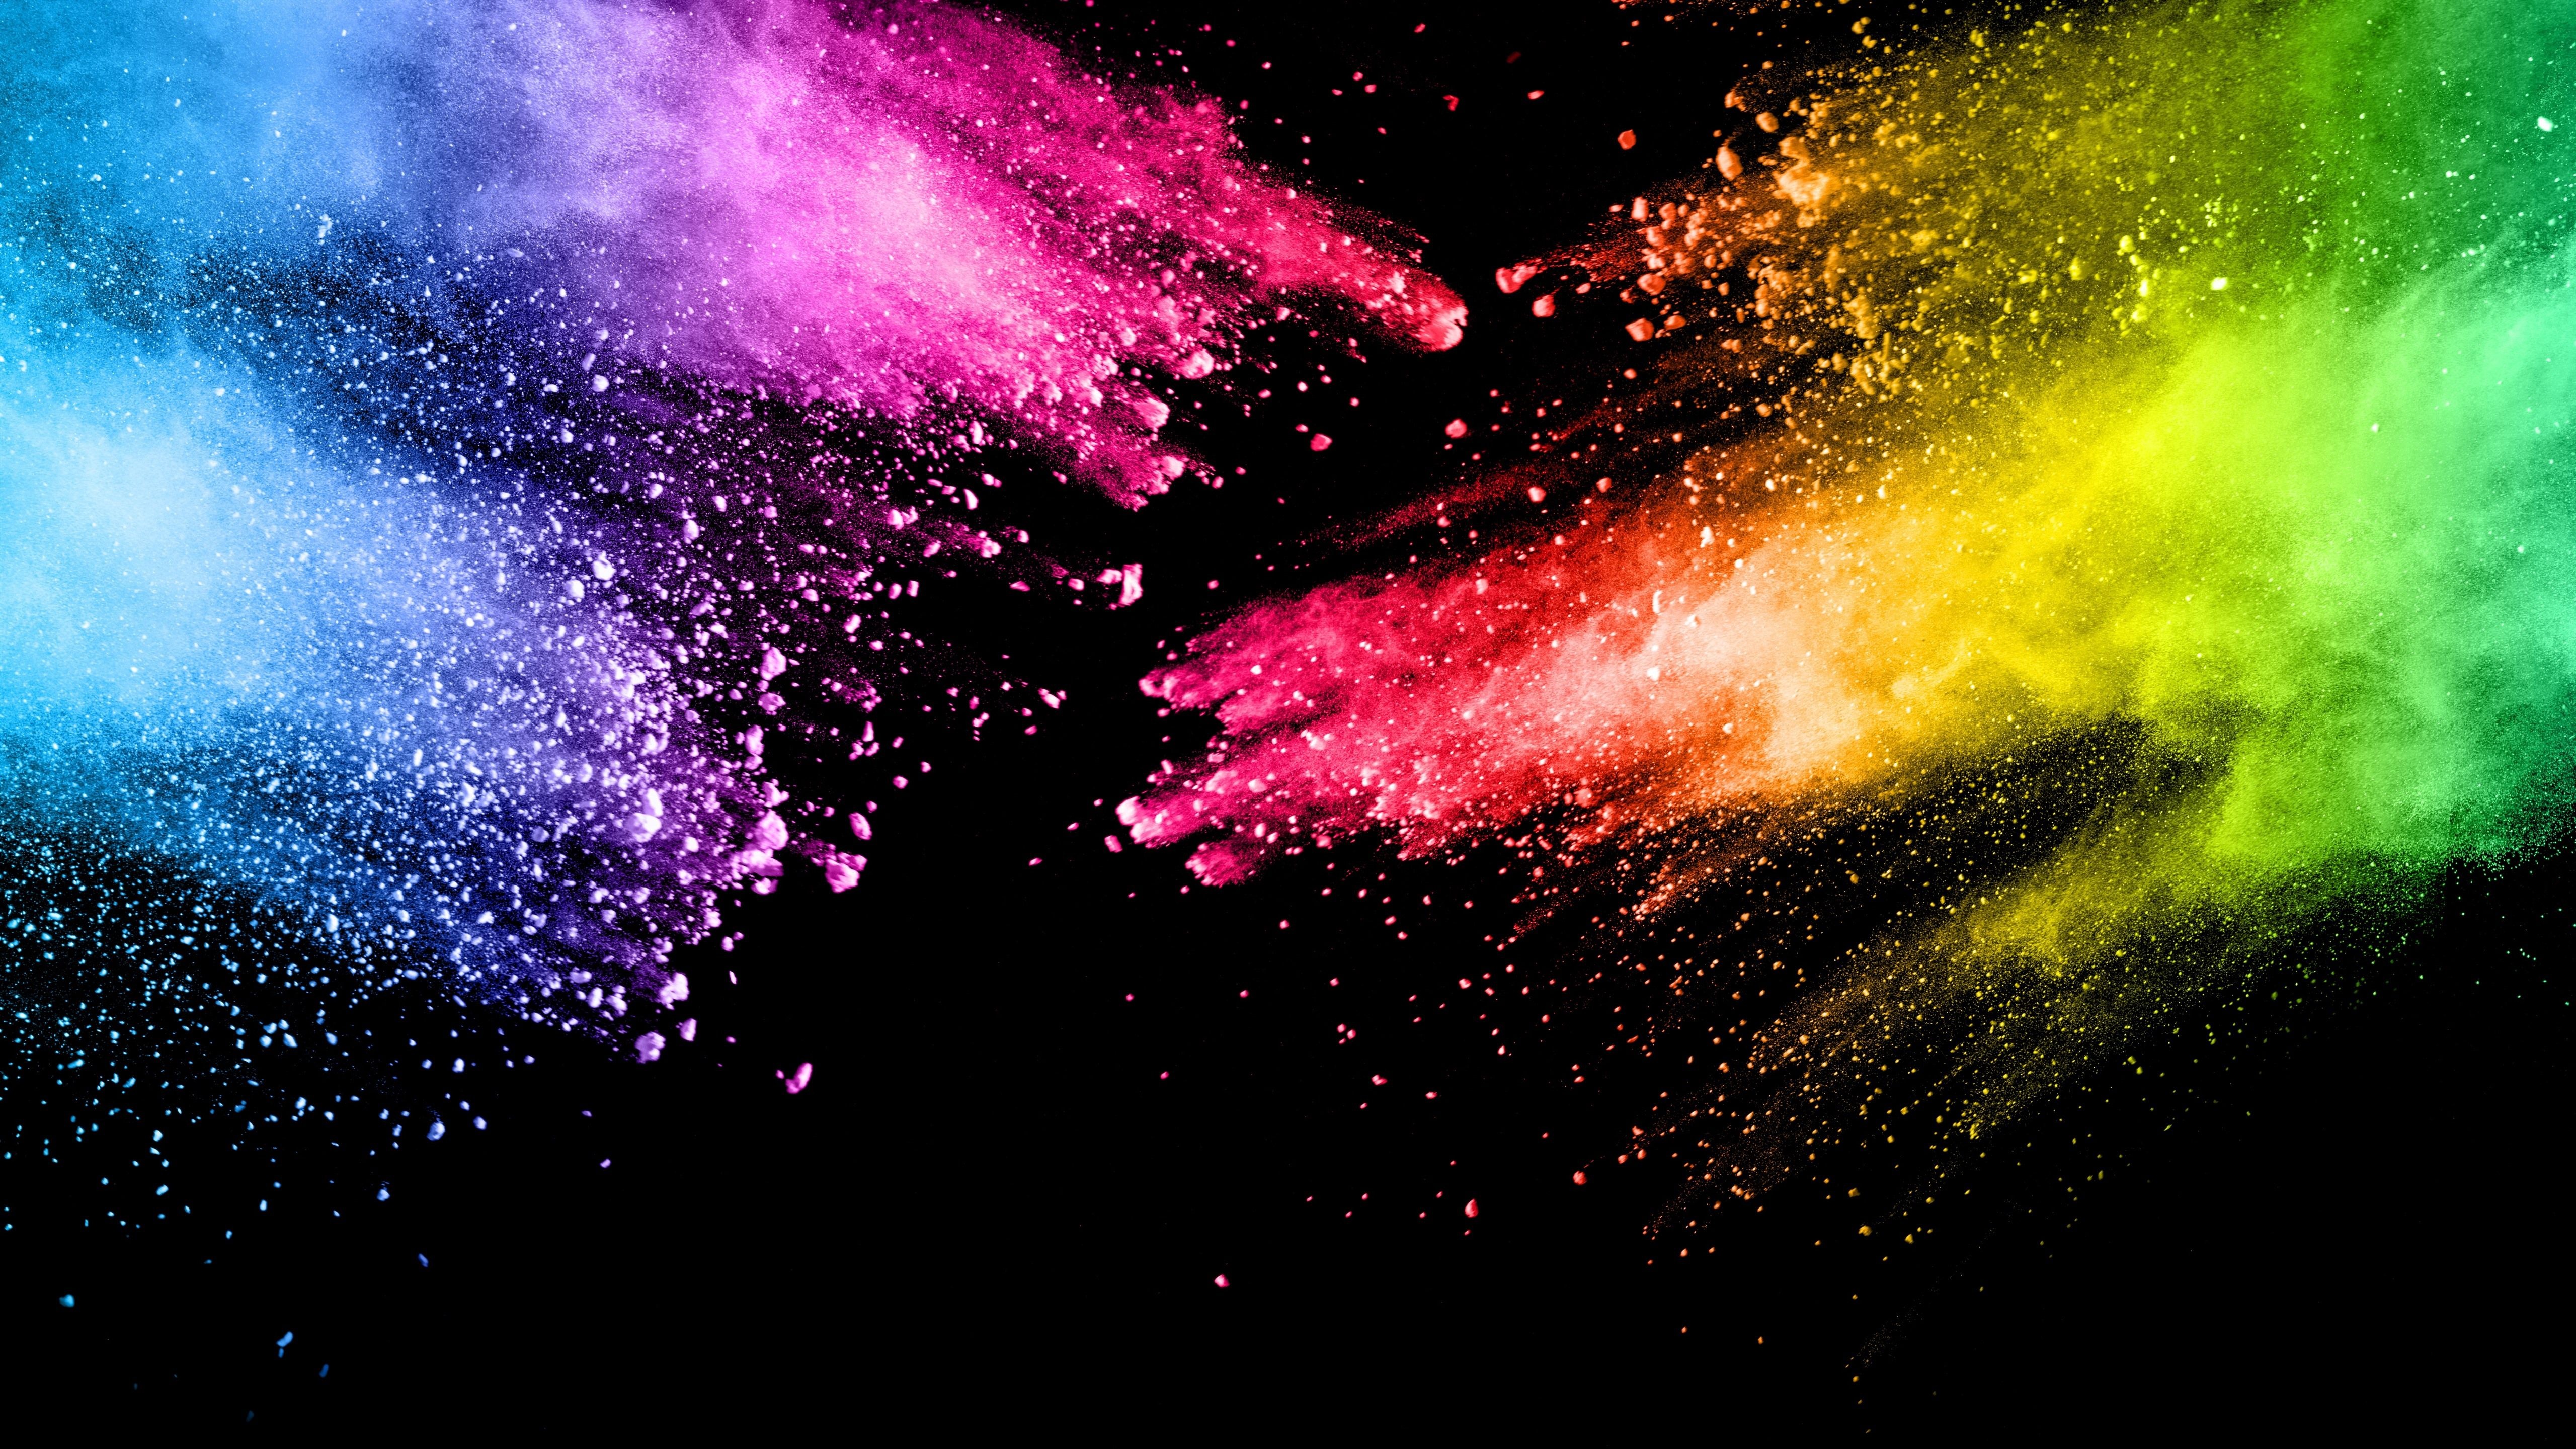 5120x2880 Wallpaper Colorful paint, splash, rainbow colors, abstract ...